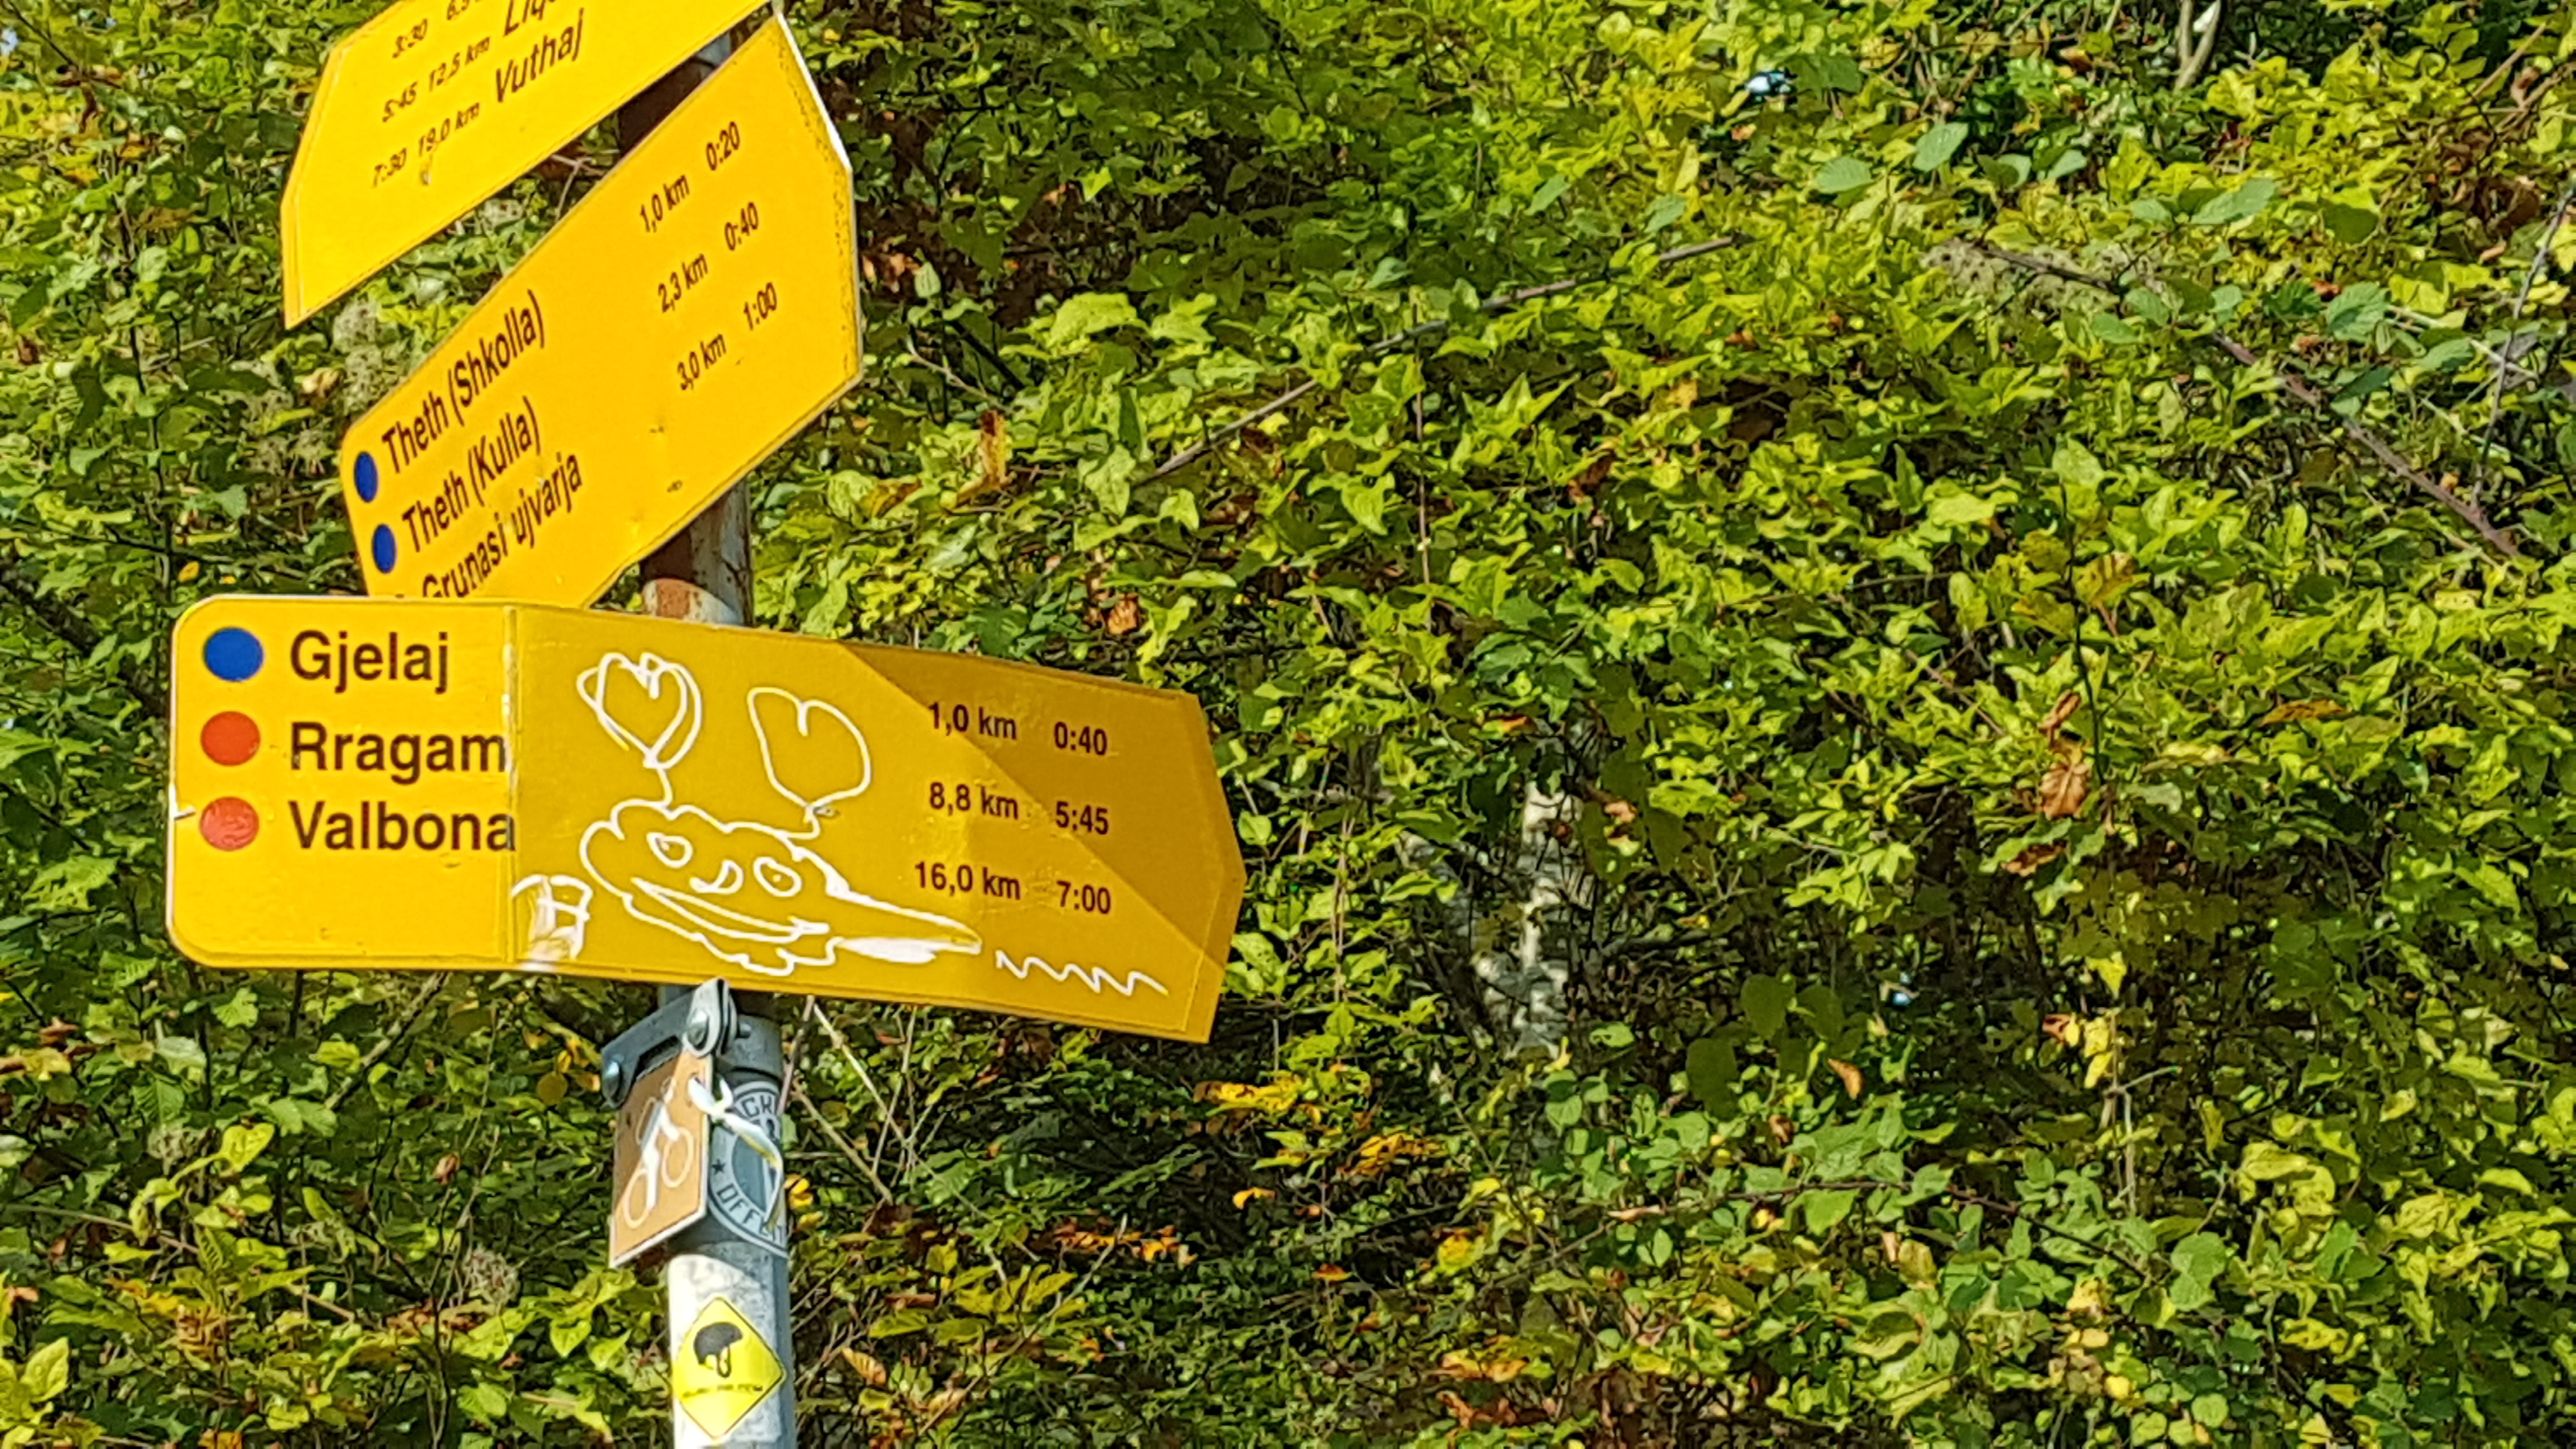 Directions Board While Hiking to Kruje